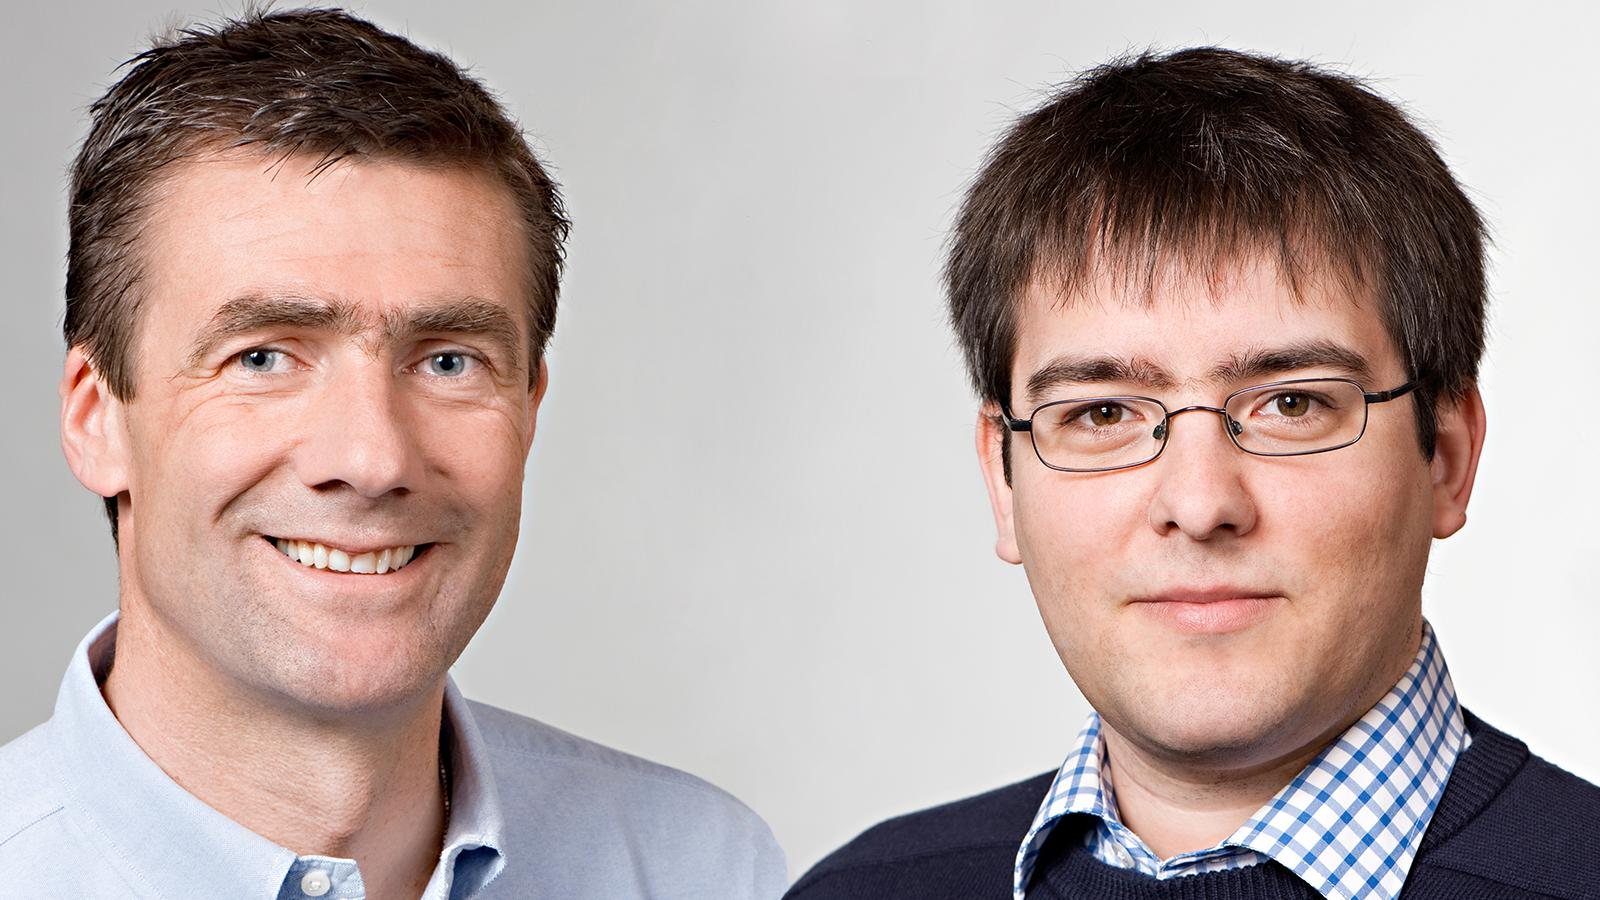 Chemist Prof. Thorsten Bach (left) and informatics scientist Prof. Thomas Neumann